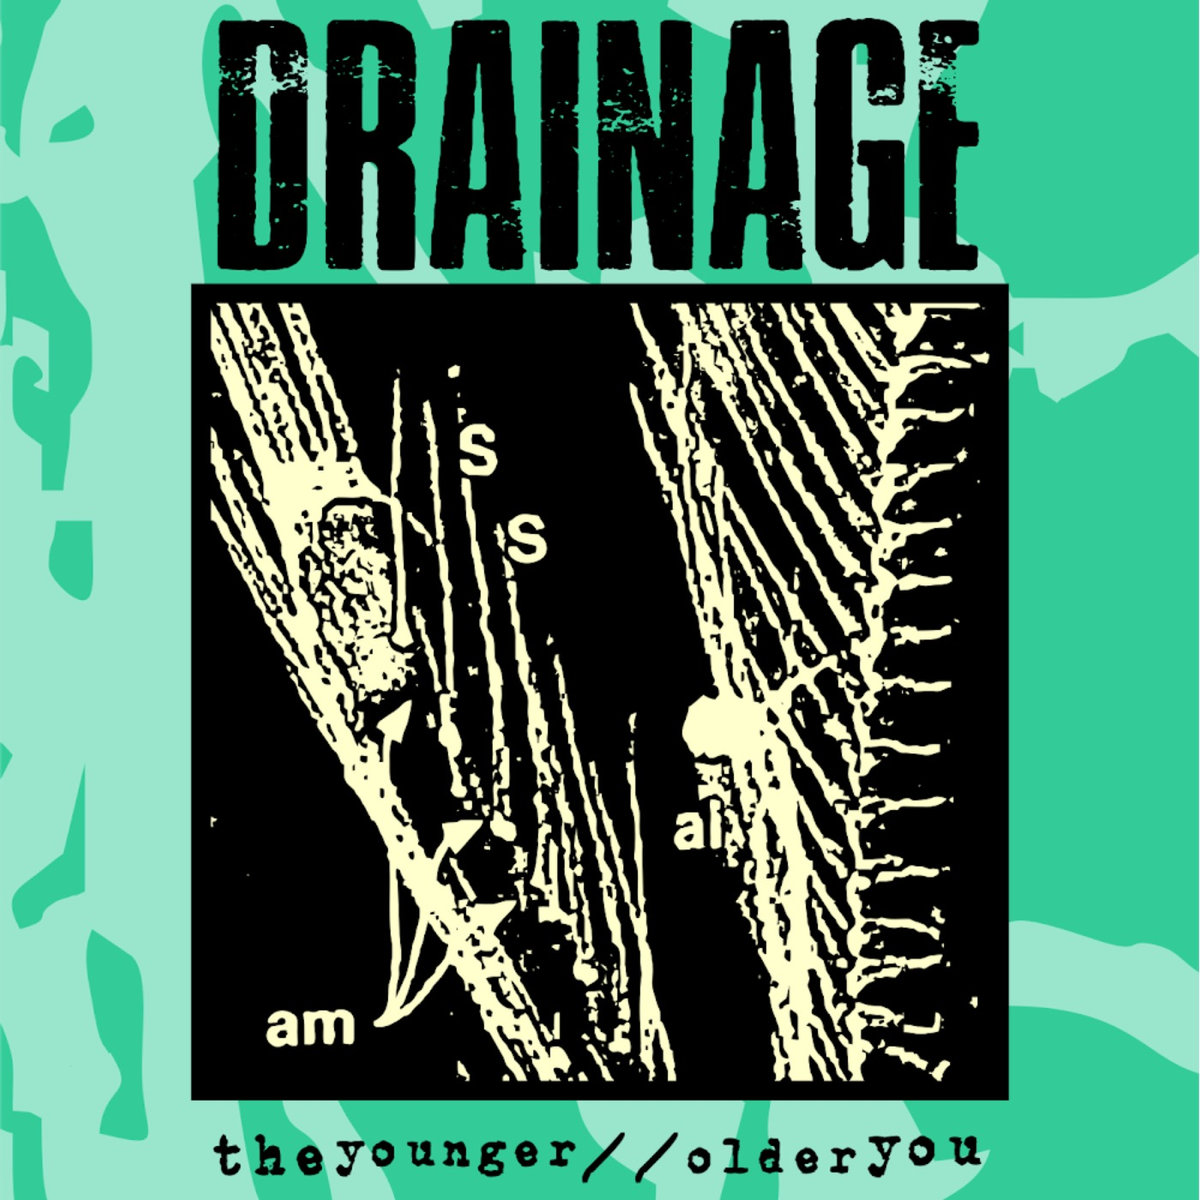 Drainage - The Younger // Older You